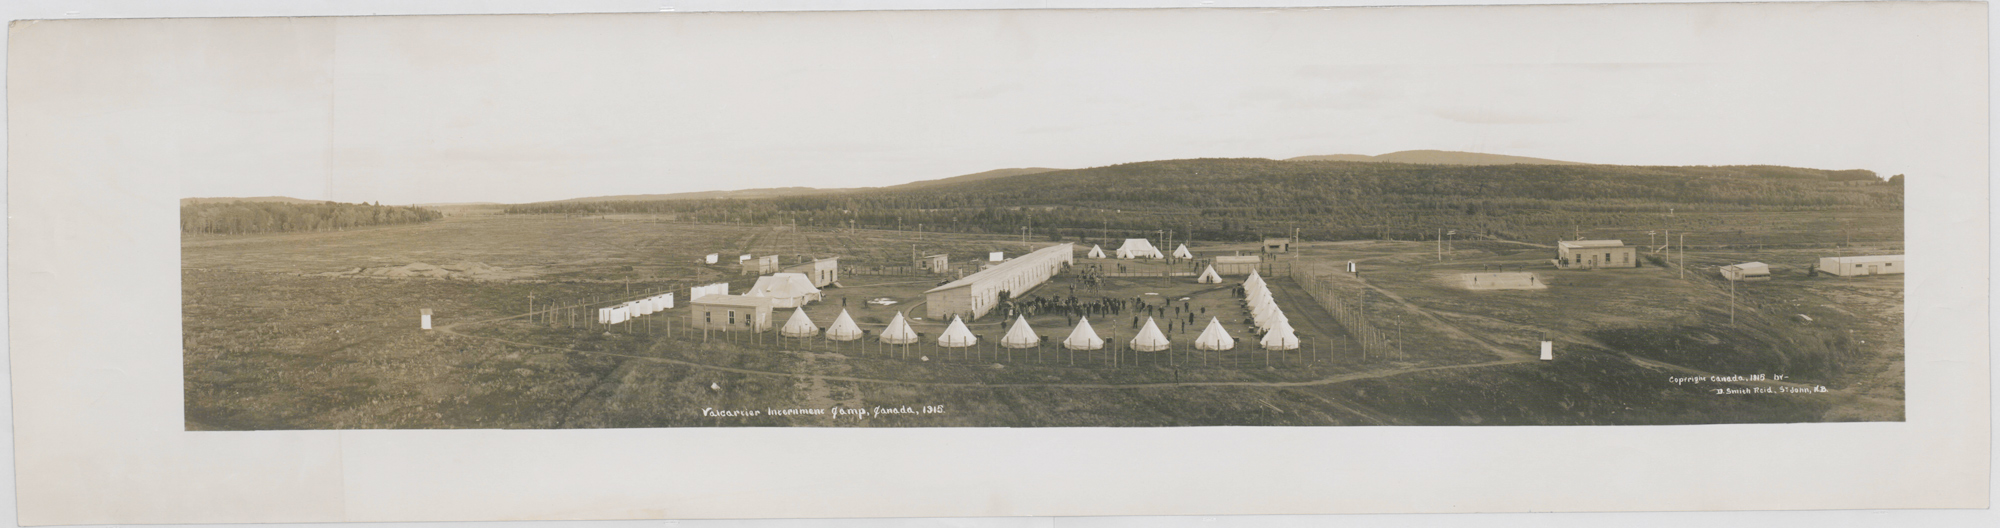 Photograph, 1915, showing Valcartier internment camp. Valcartier, near Quebec City, was originally built as a military training camp, but was also used as a internment camp for 'enemy aliens' during World War One.